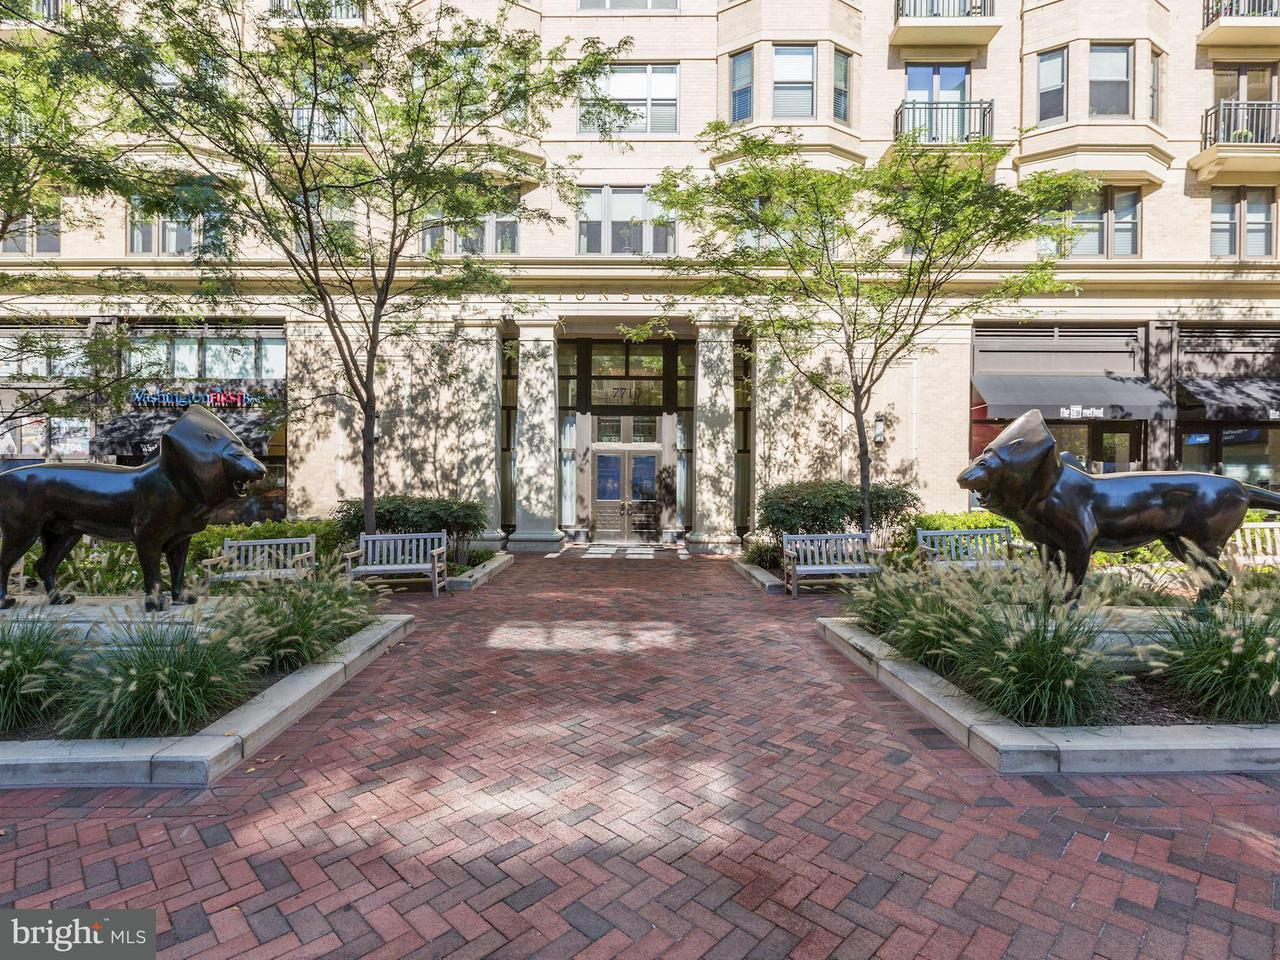 Townhouse for Sale at 7710 WOODMONT AVE #1211 7710 WOODMONT AVE #1211 Bethesda, Maryland 20814 United States